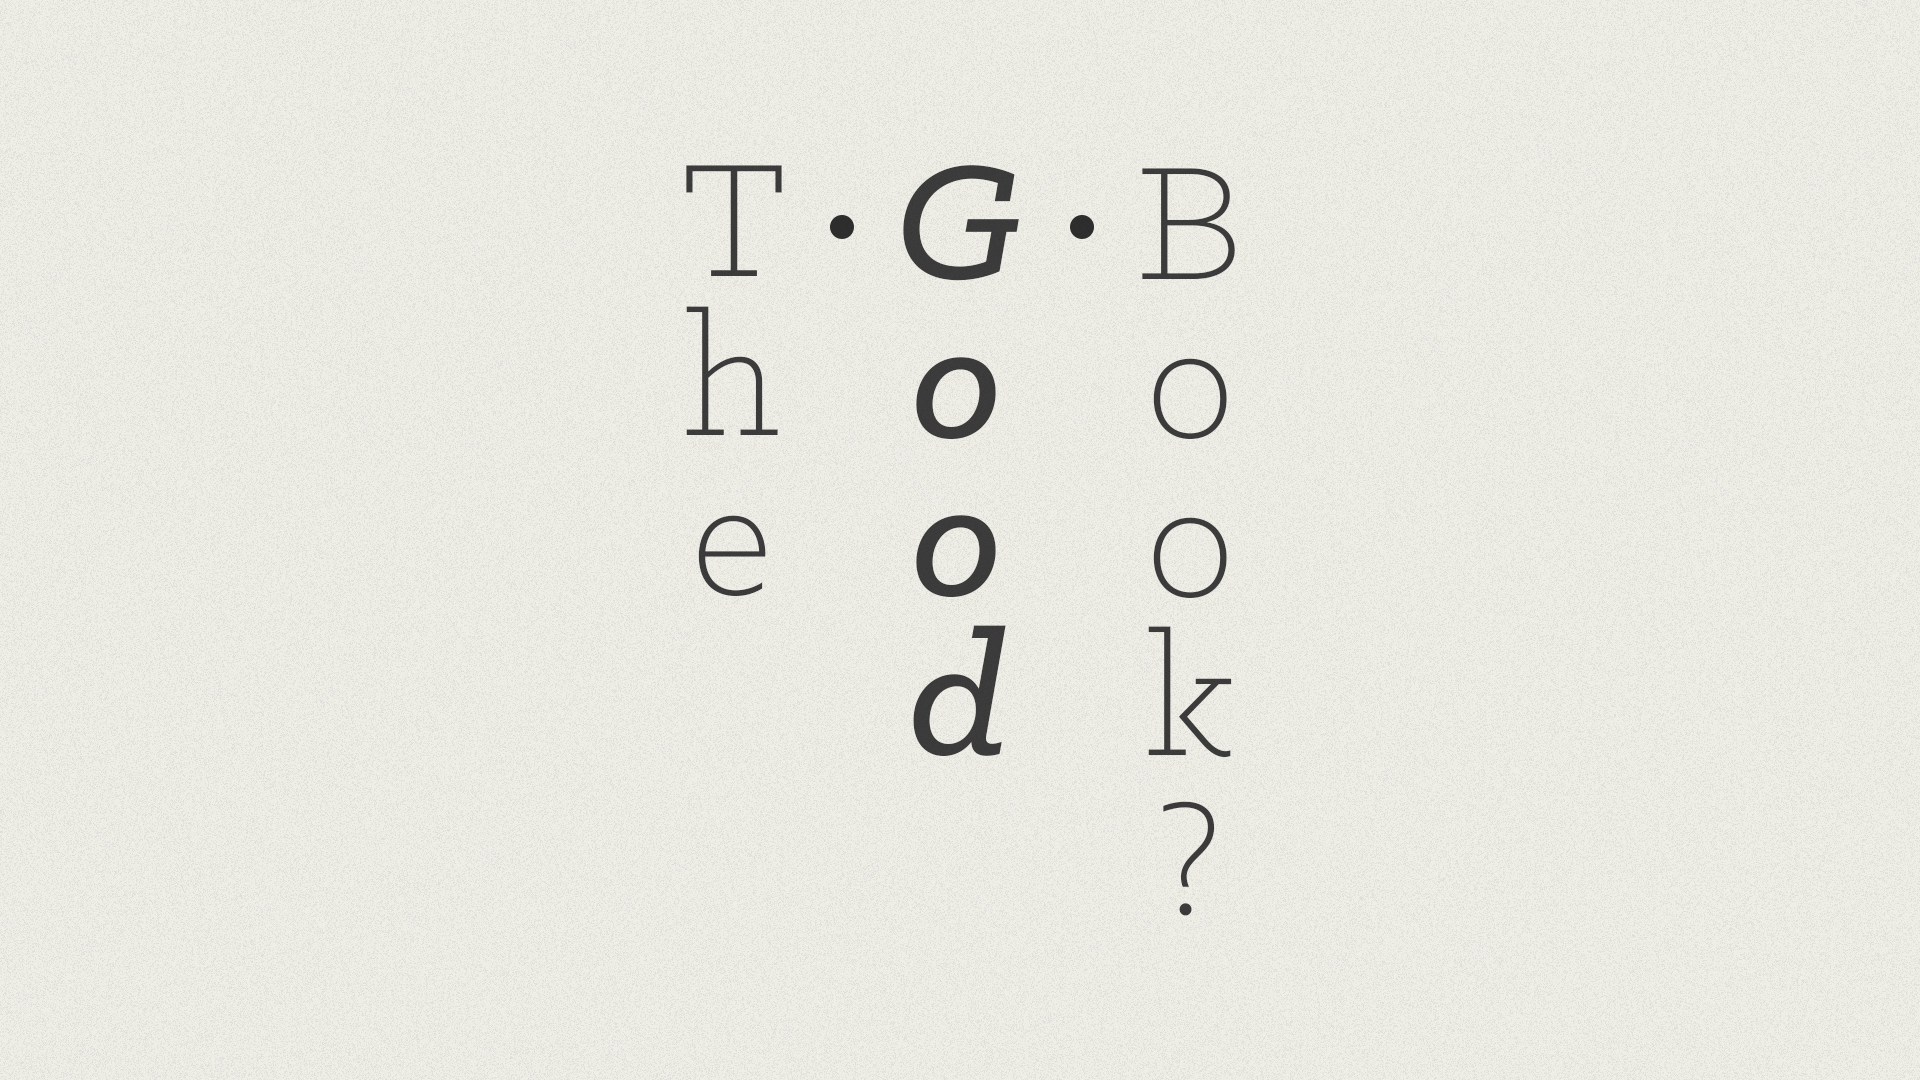 THE GOOD BOOK?